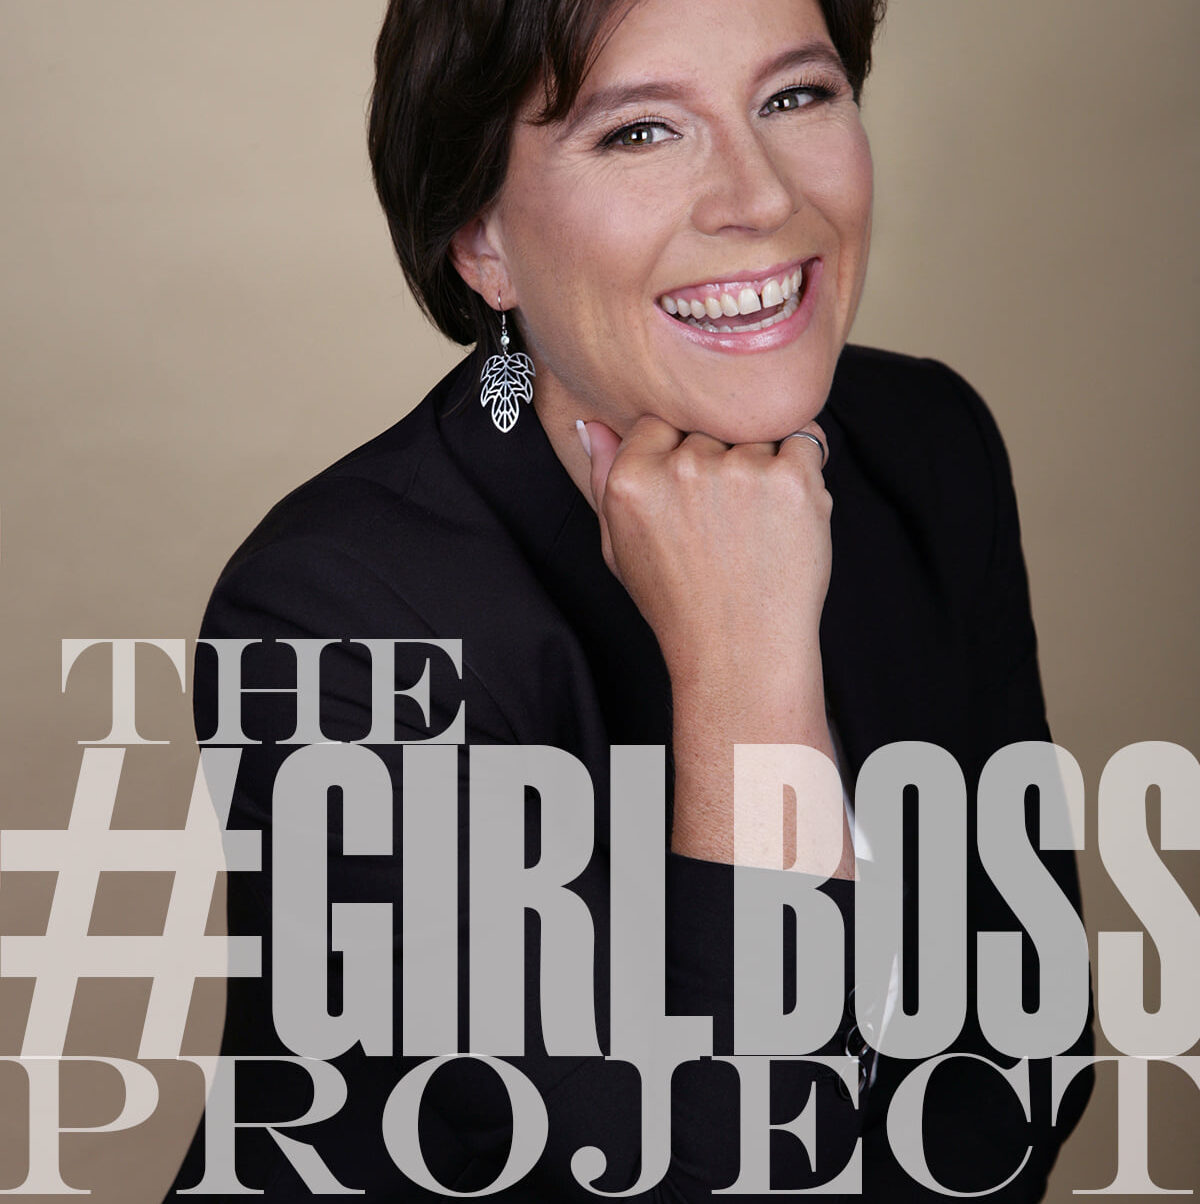 The GirlBoss project